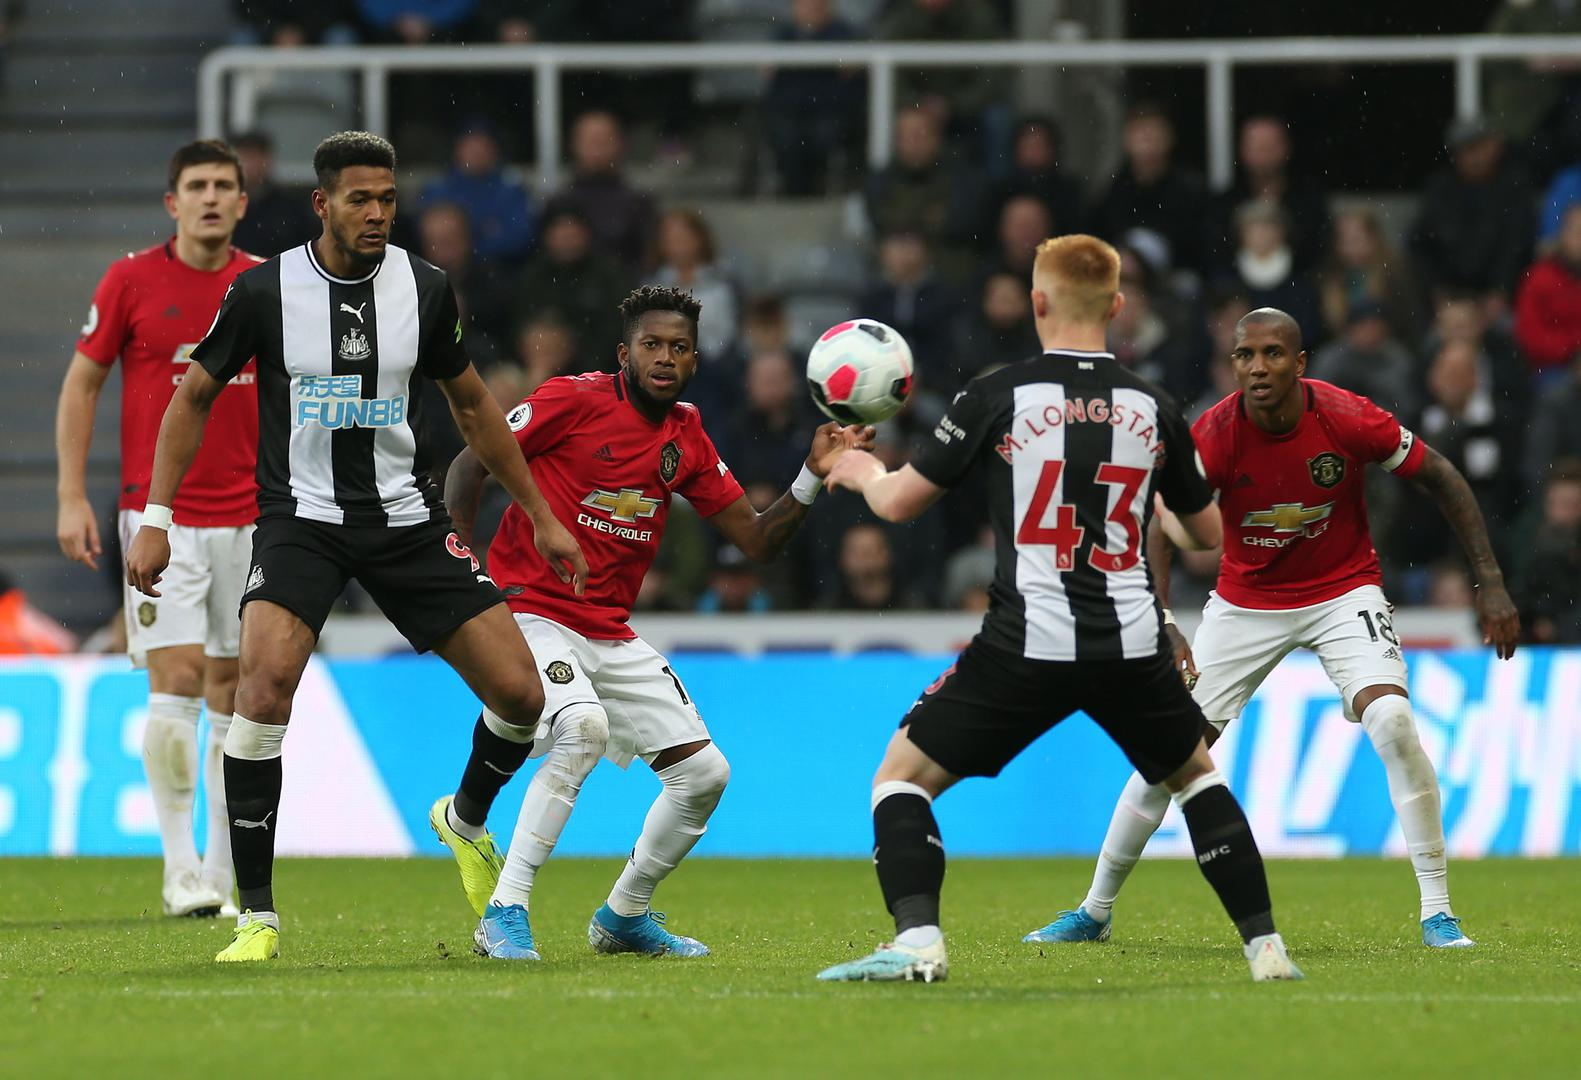 Newcastle vs. United